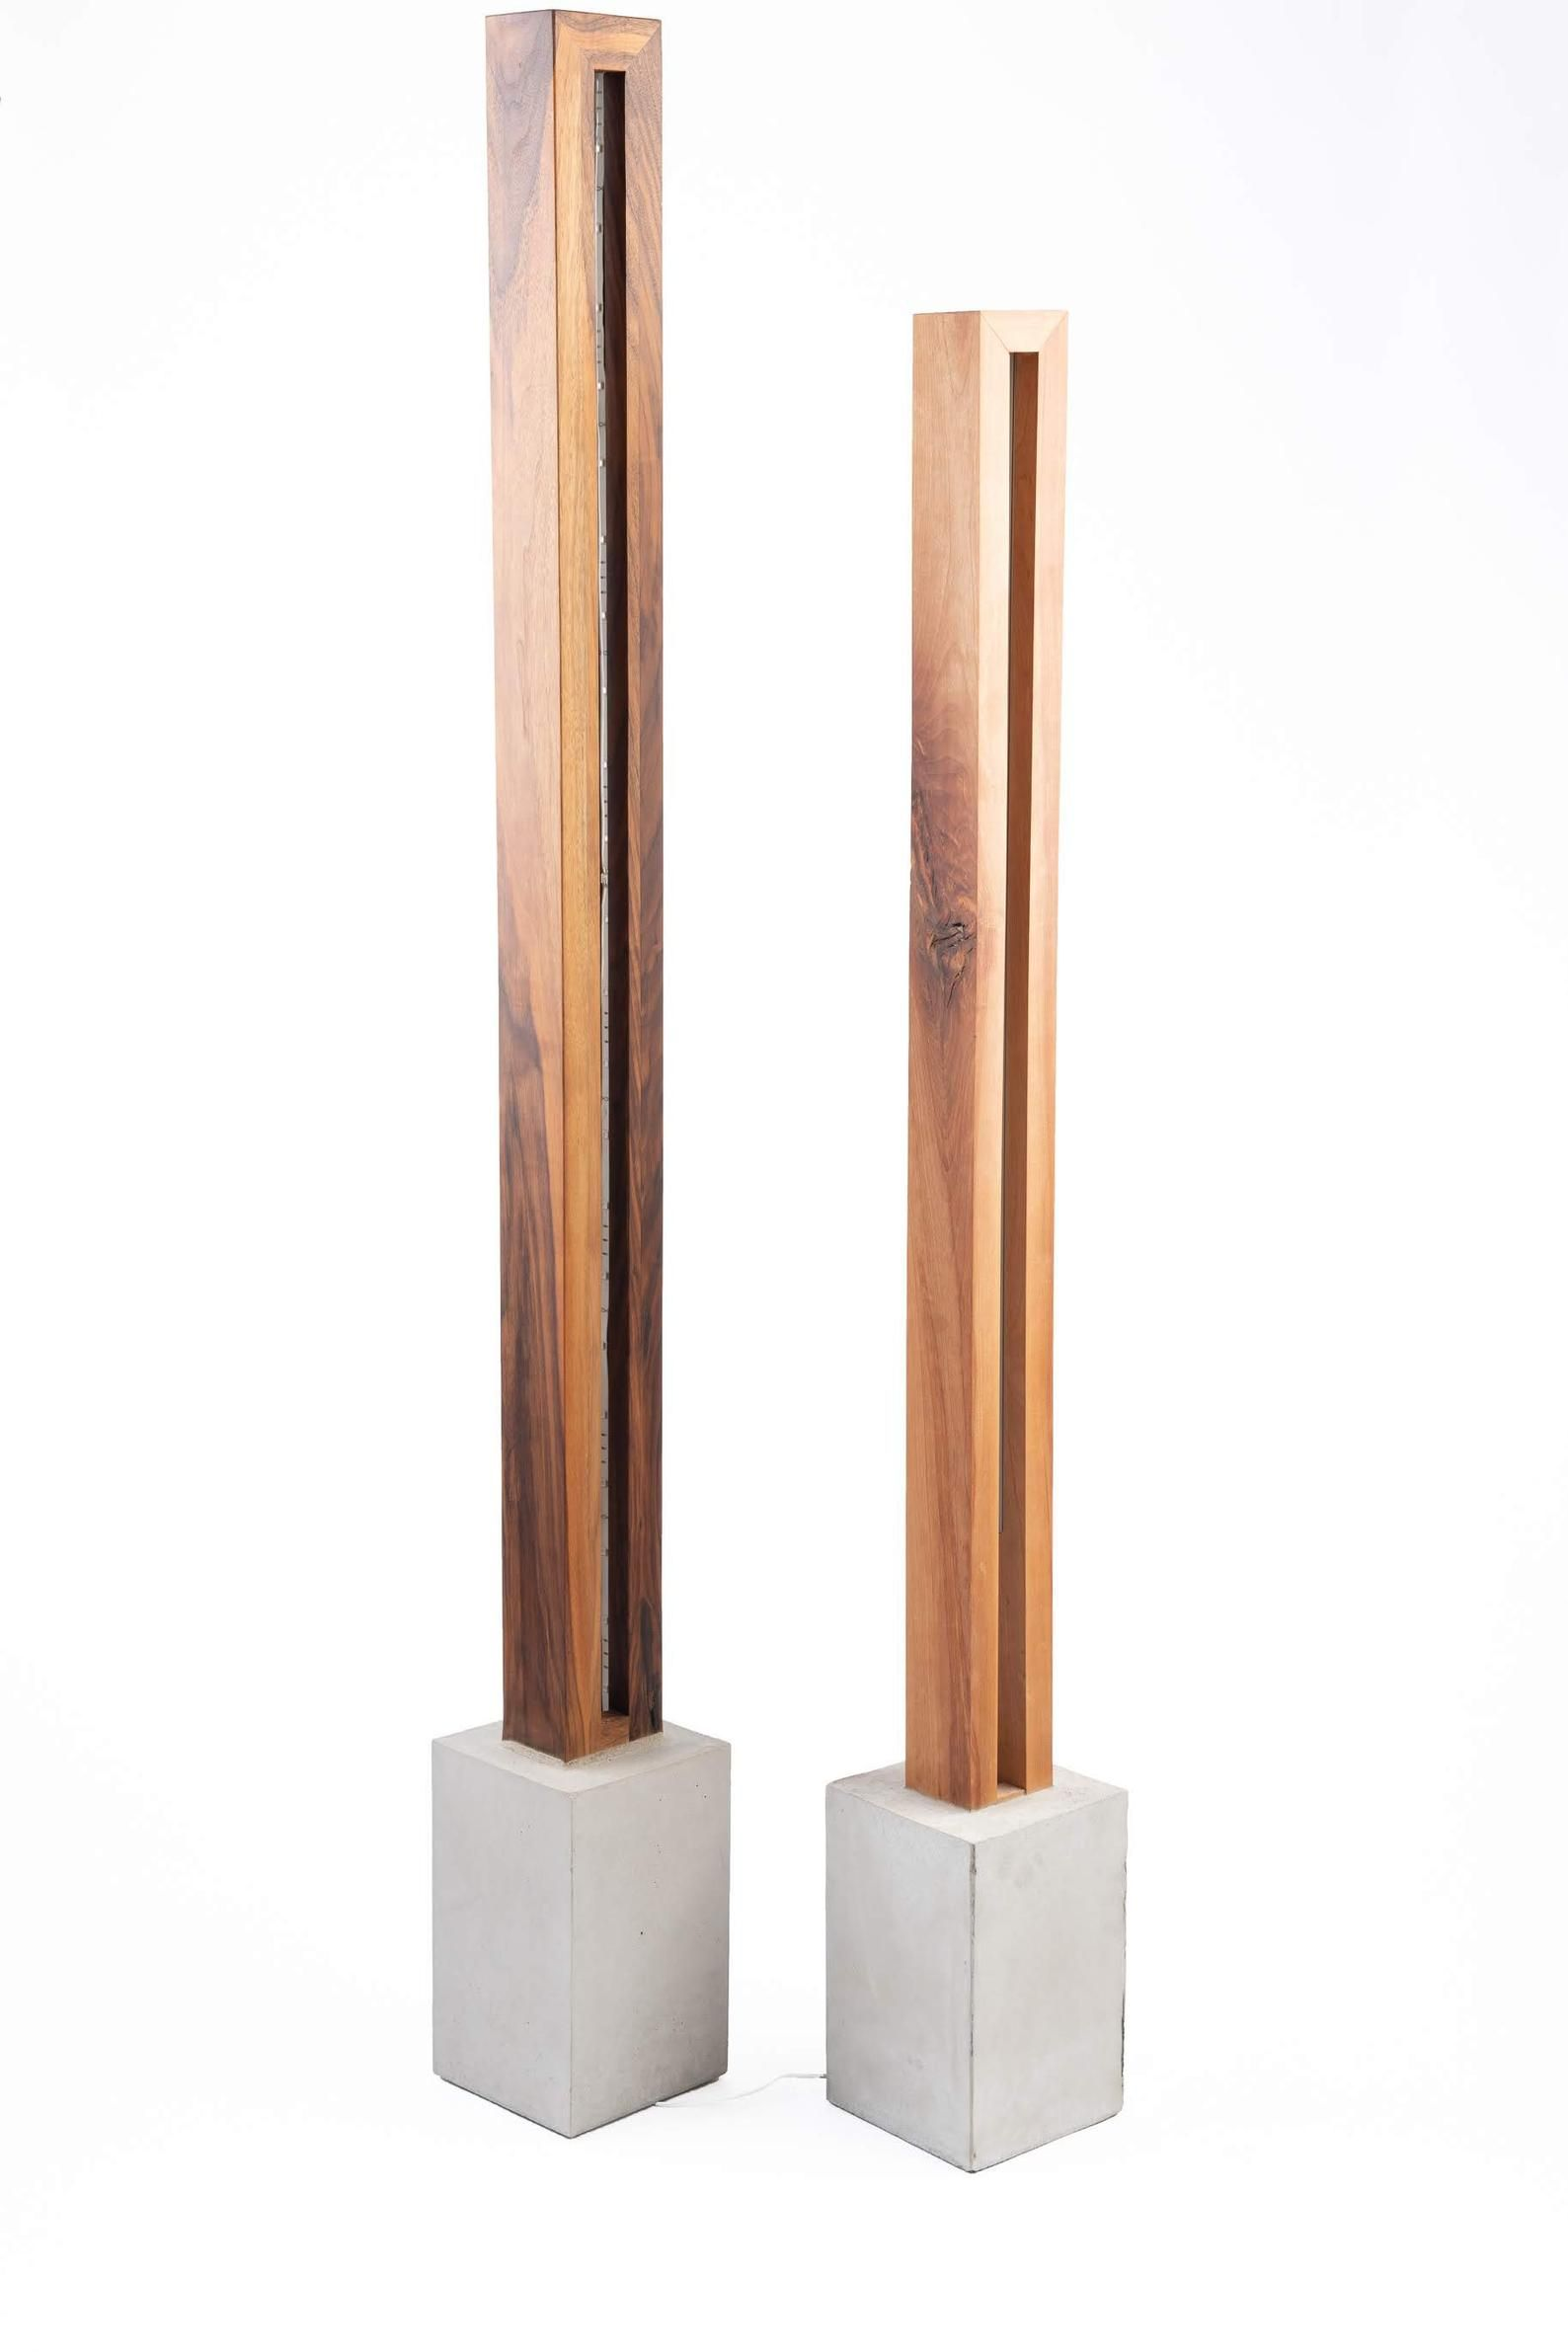 Wood Amp Light Sculpture Floor Lamp With Images Light Sculpture Concrete Light Floor Lamp